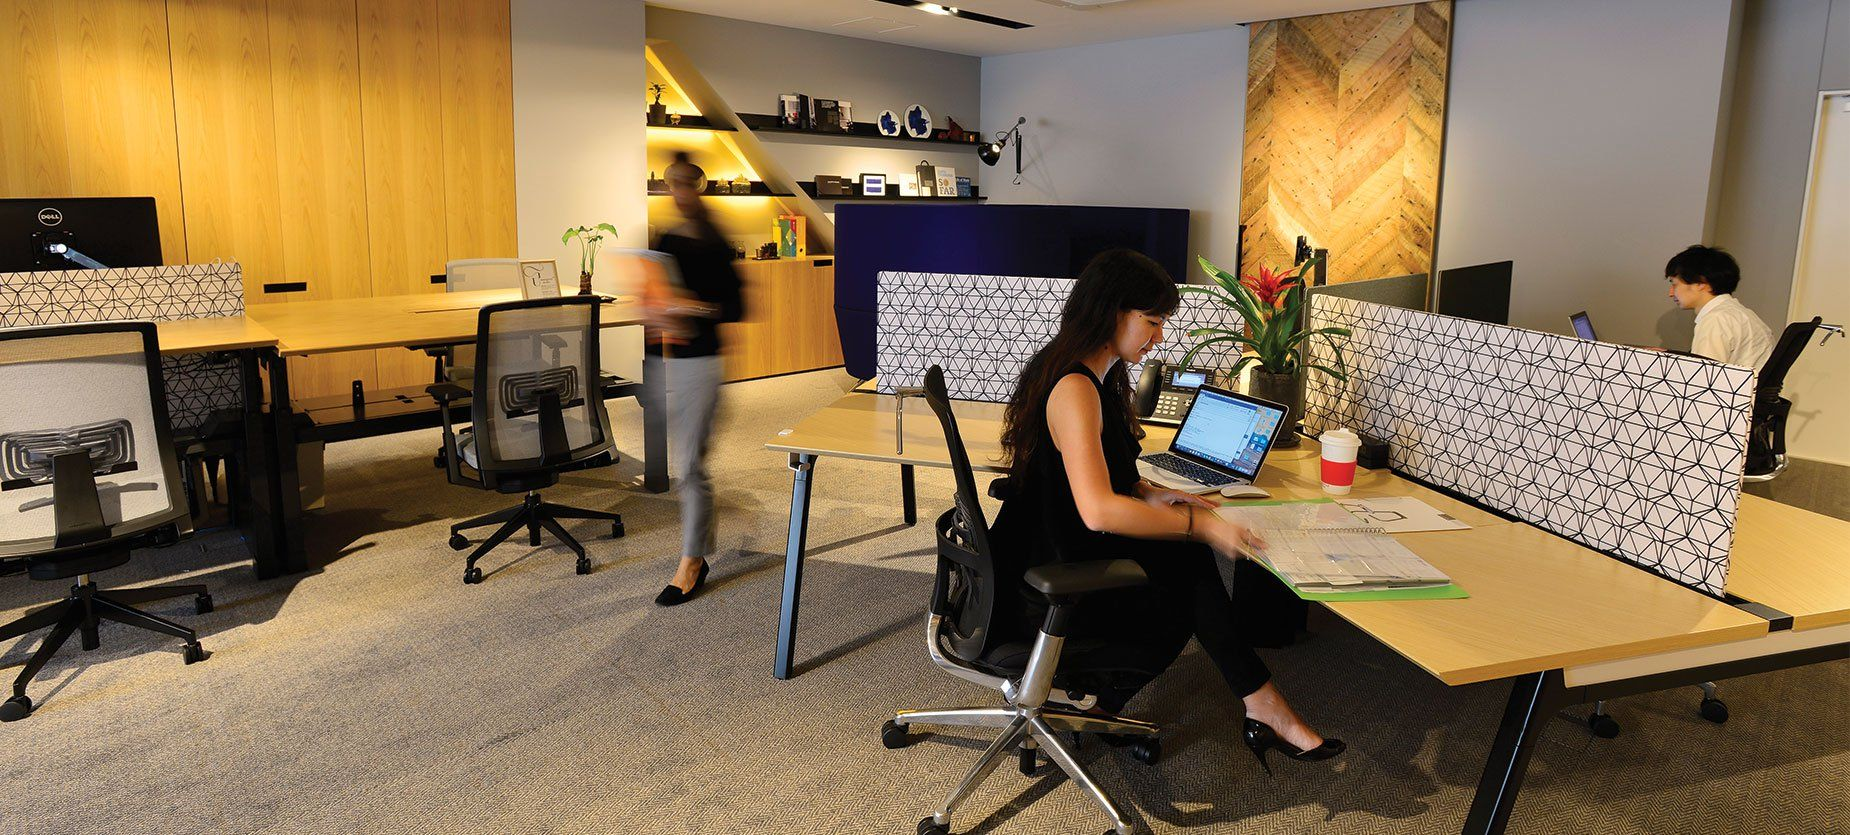 Discover Haworth's At Work Open Office Spaces Open